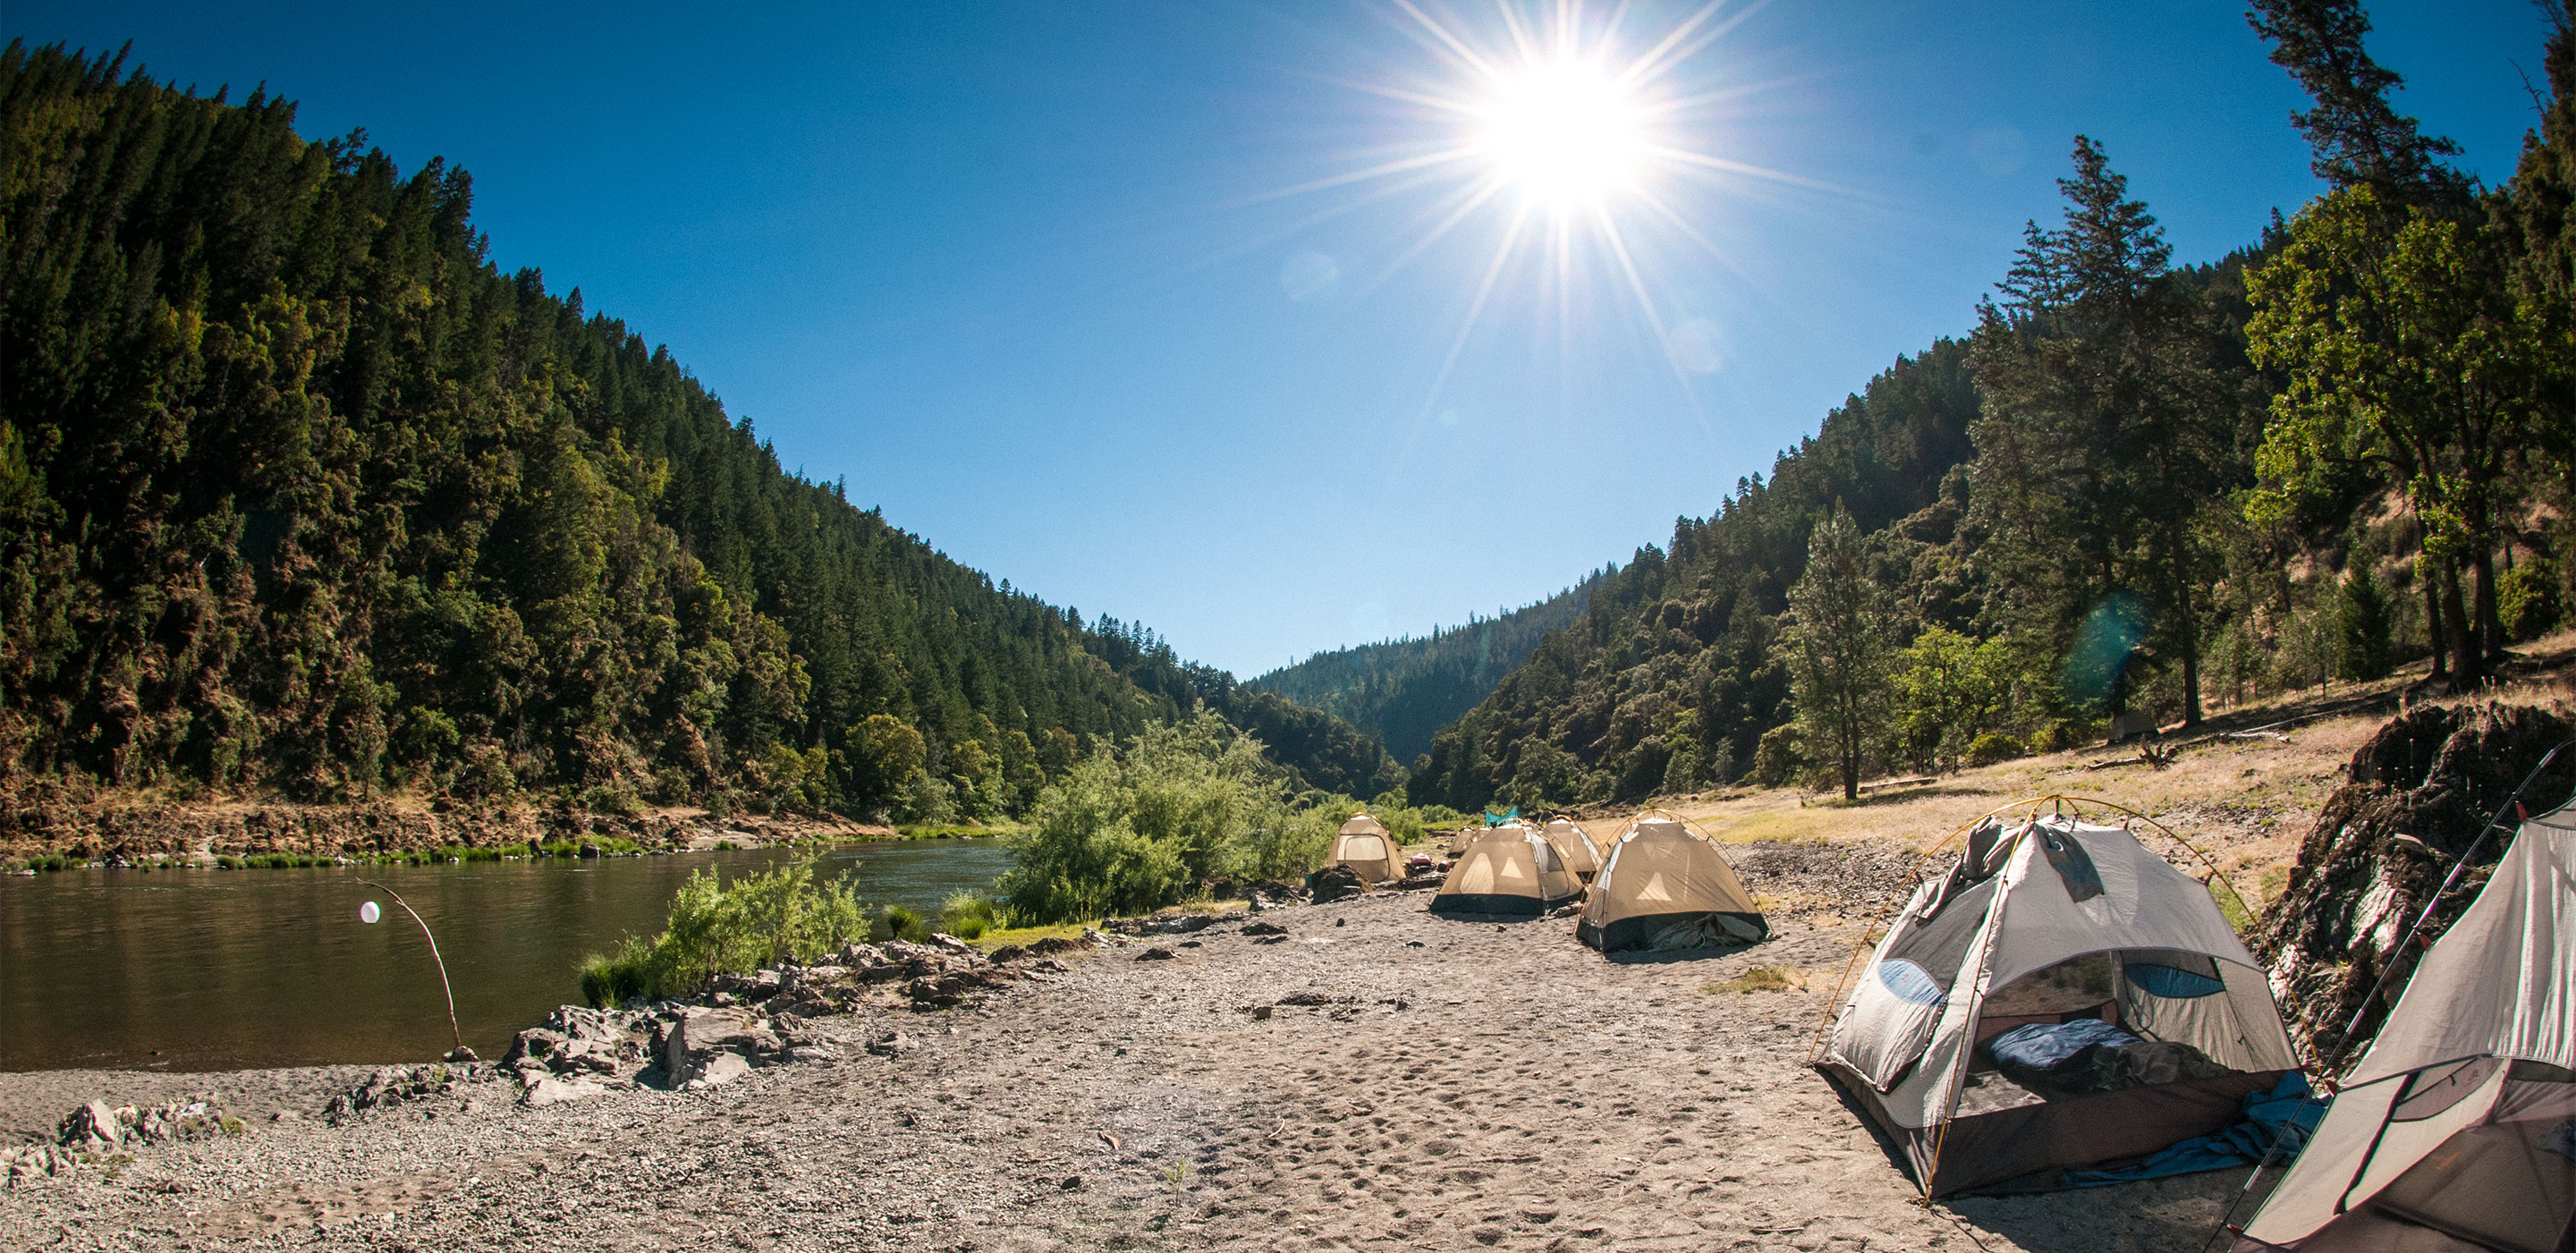 Good News Stories >> Rogue 4-Day Camp Trips Rogue River Rafting | Momentum River Expeditions - World-Class Adventures